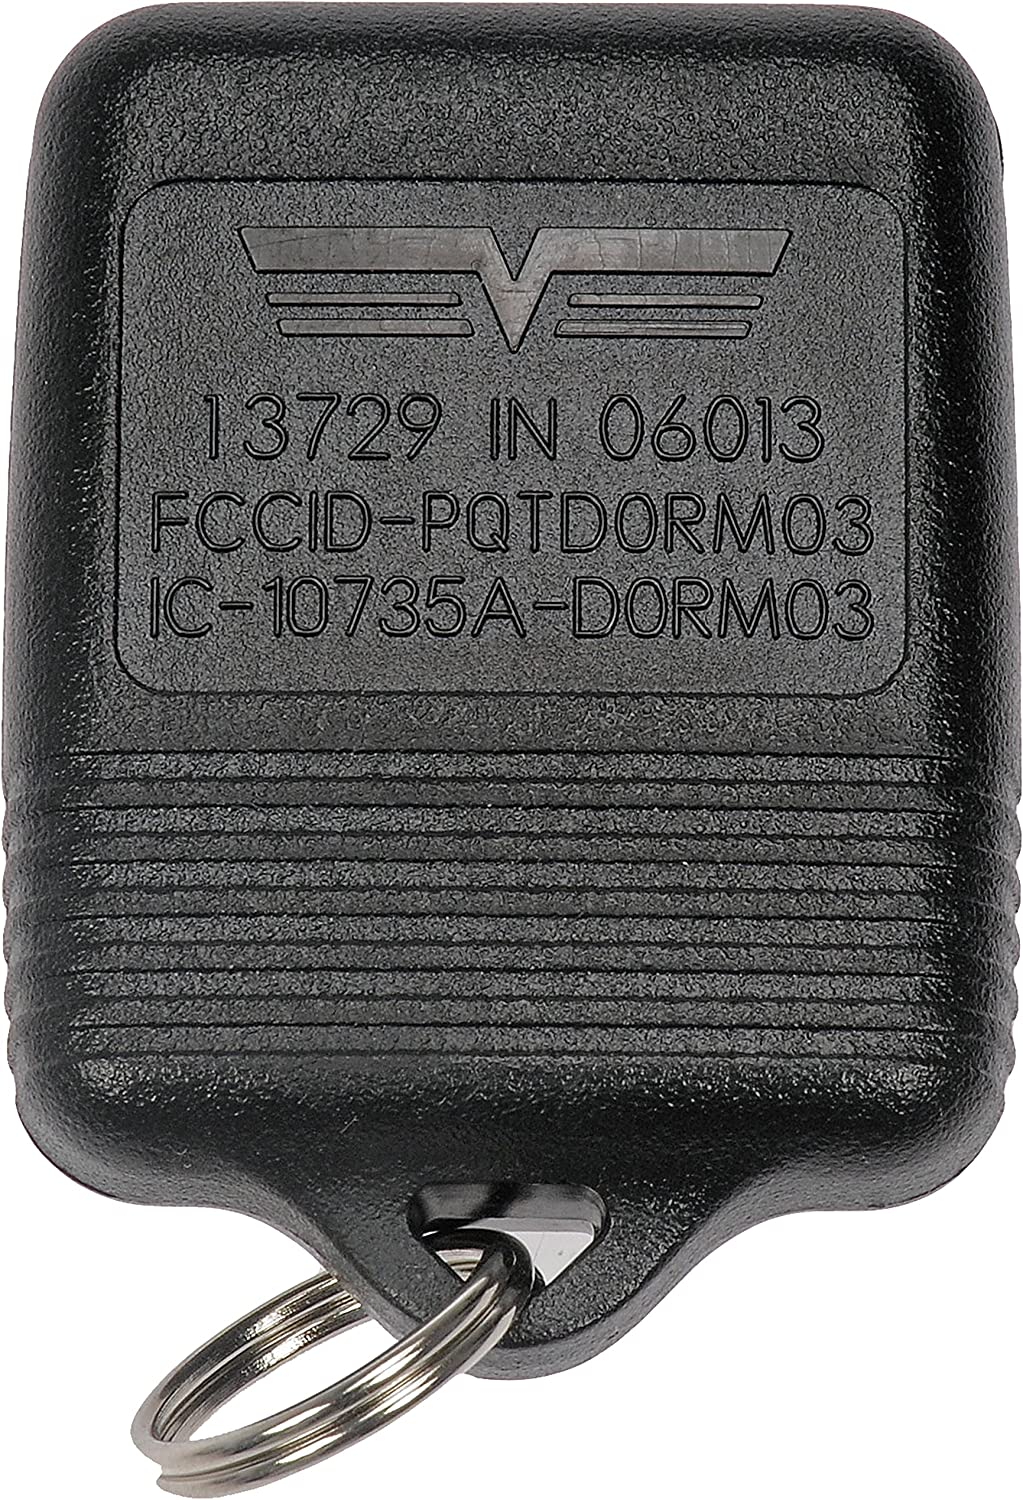 Black Dorman 13798 Keyless Entry Transmitter for Select Models